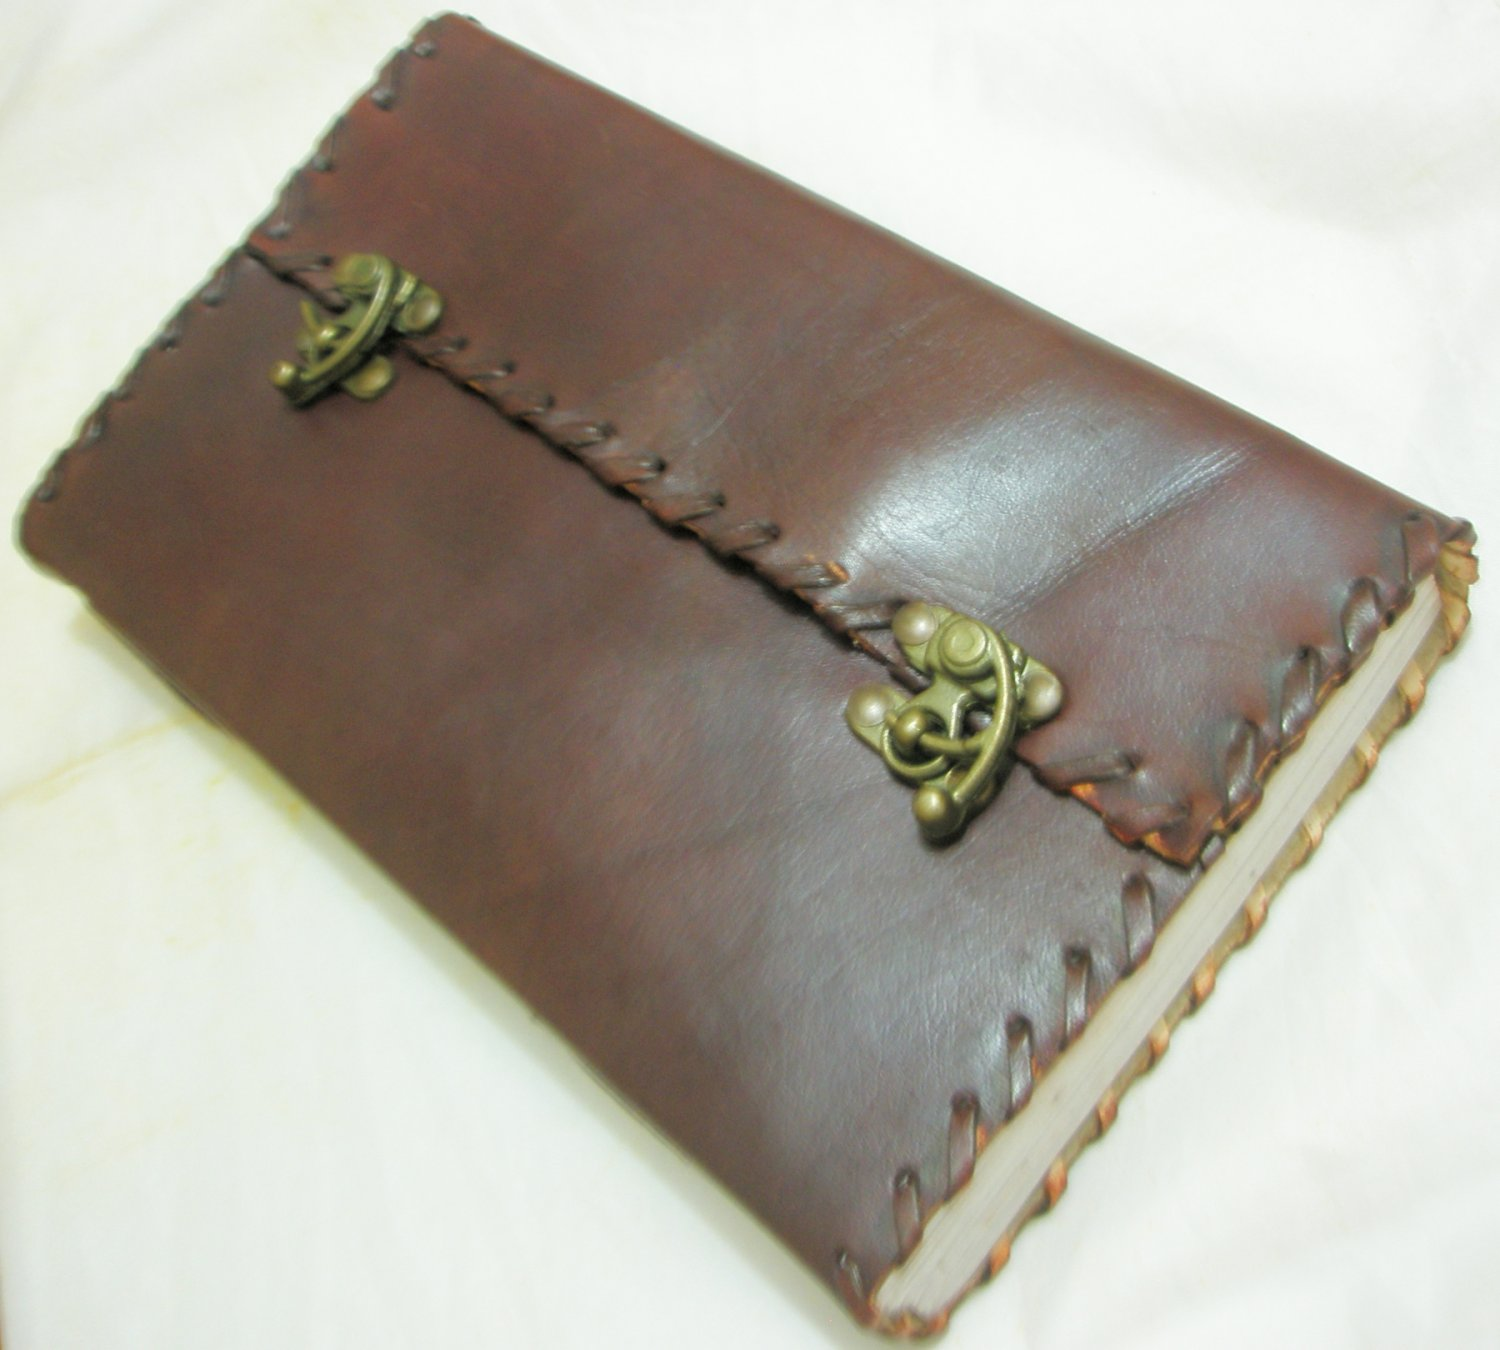 Handmade Paper Leather Journal Large Blank Diary Vintage Writing Notebook Sketchbook Art